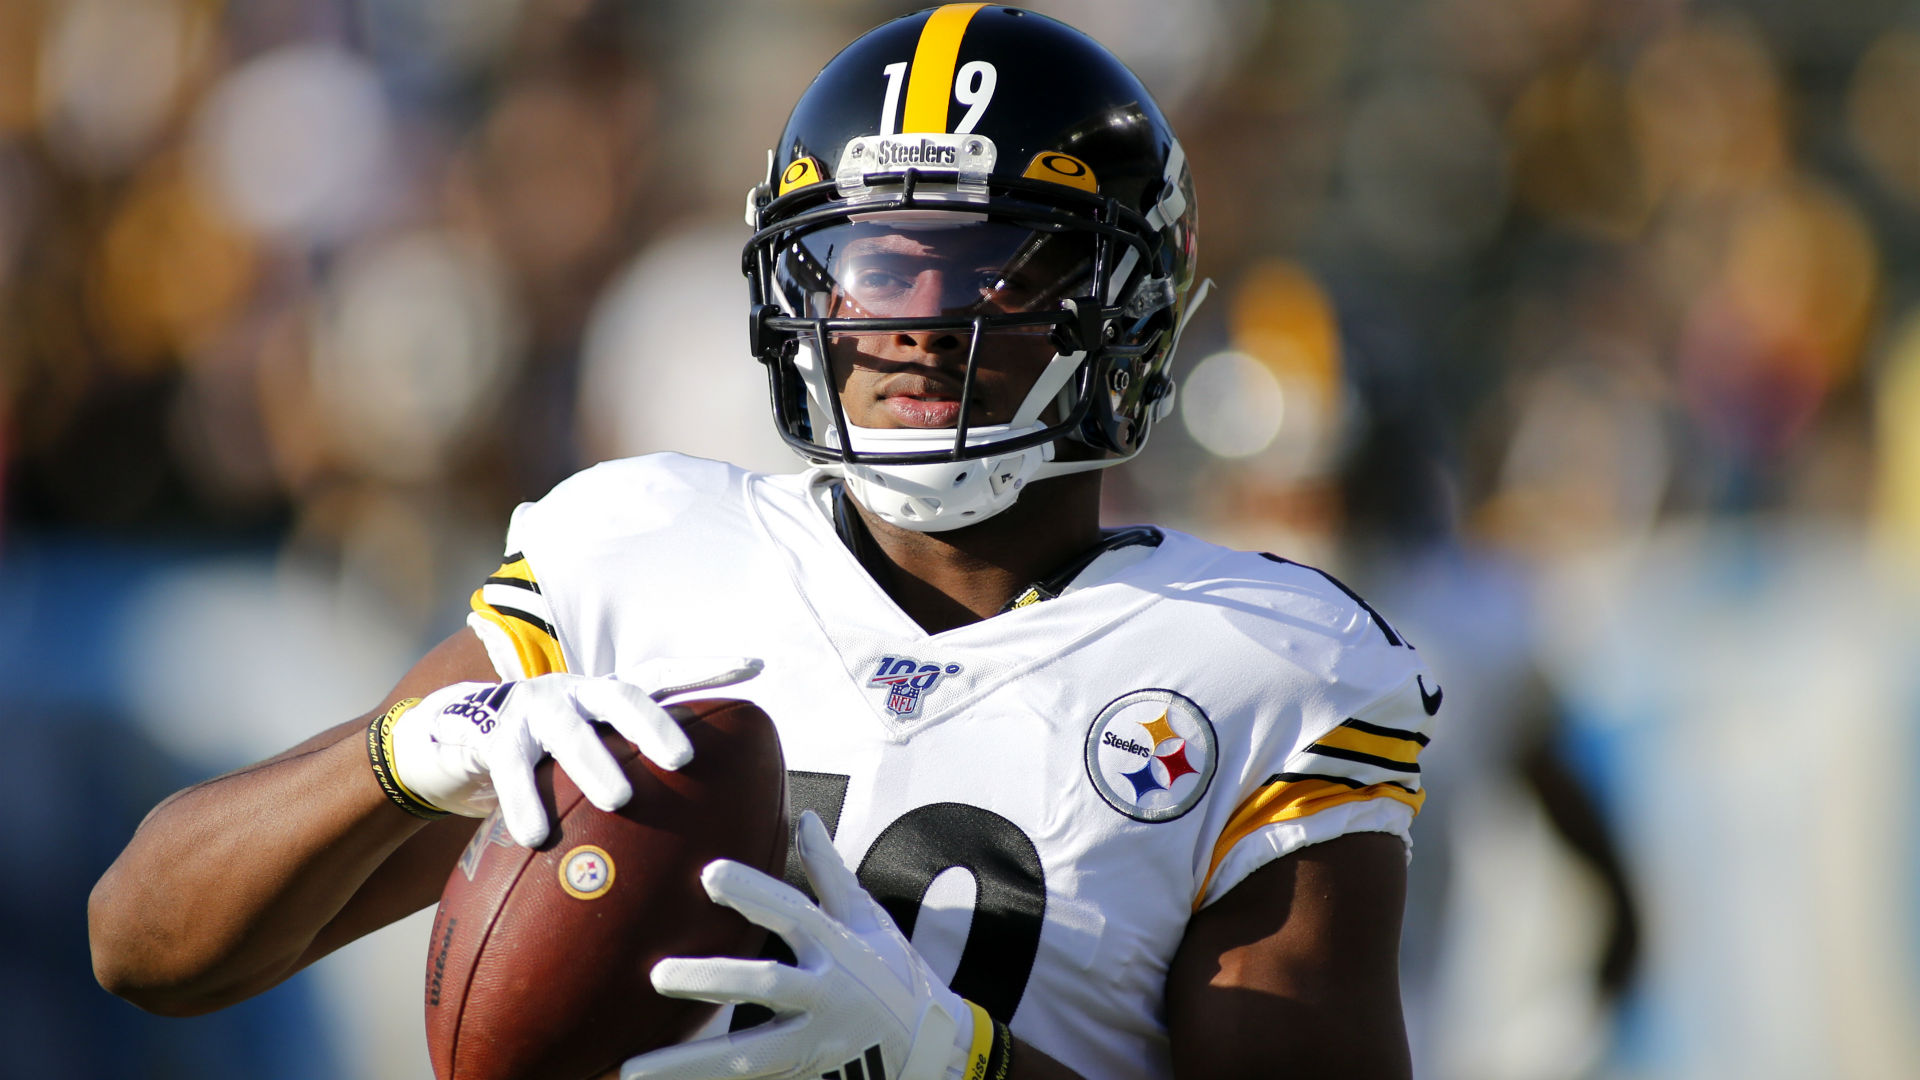 James Conner and JuJu Smith-Schuster will not play against the Cincinnati Bengals on Sunday, but Diontae Johnson is set to feature.